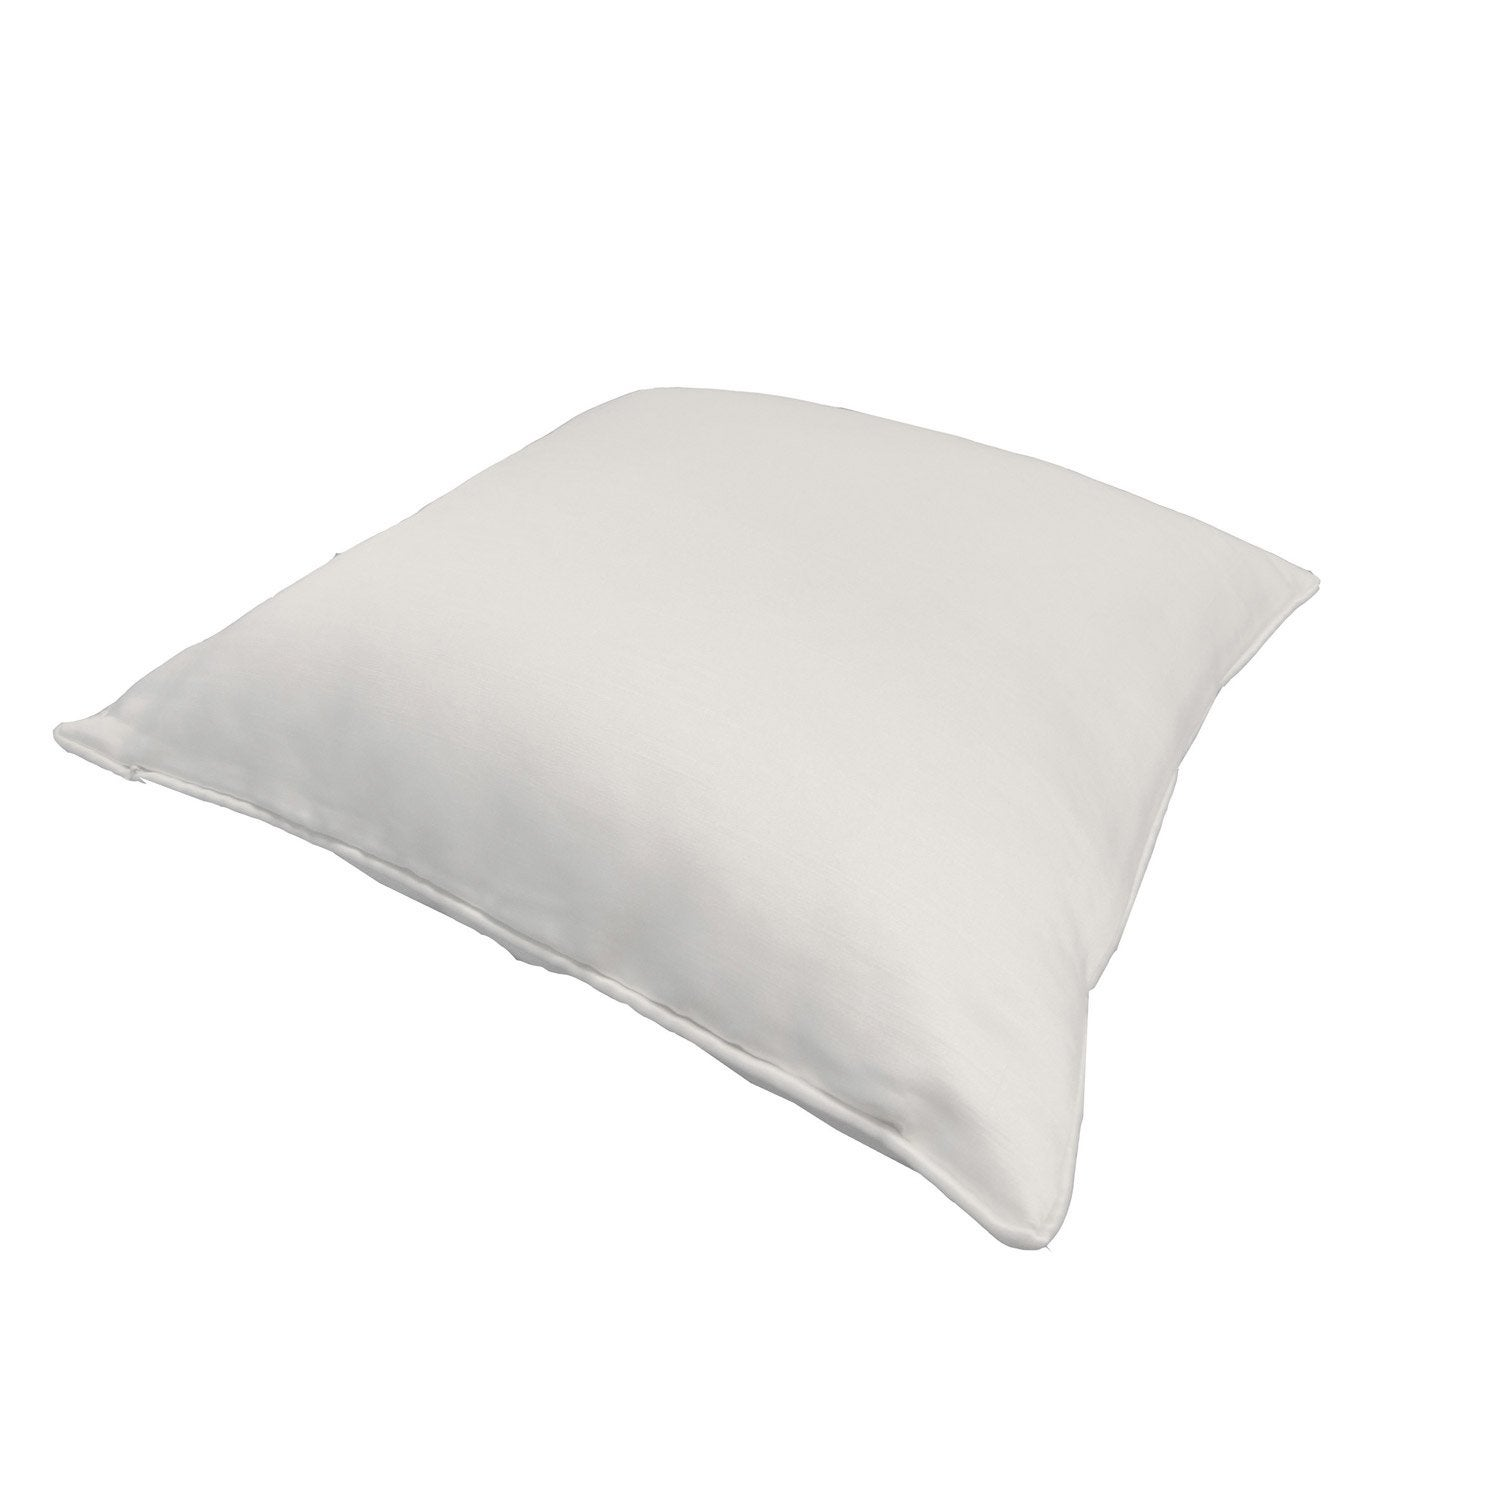 Coussin ascot blanc x cm leroy merlin - Coussin leroy merlin ...